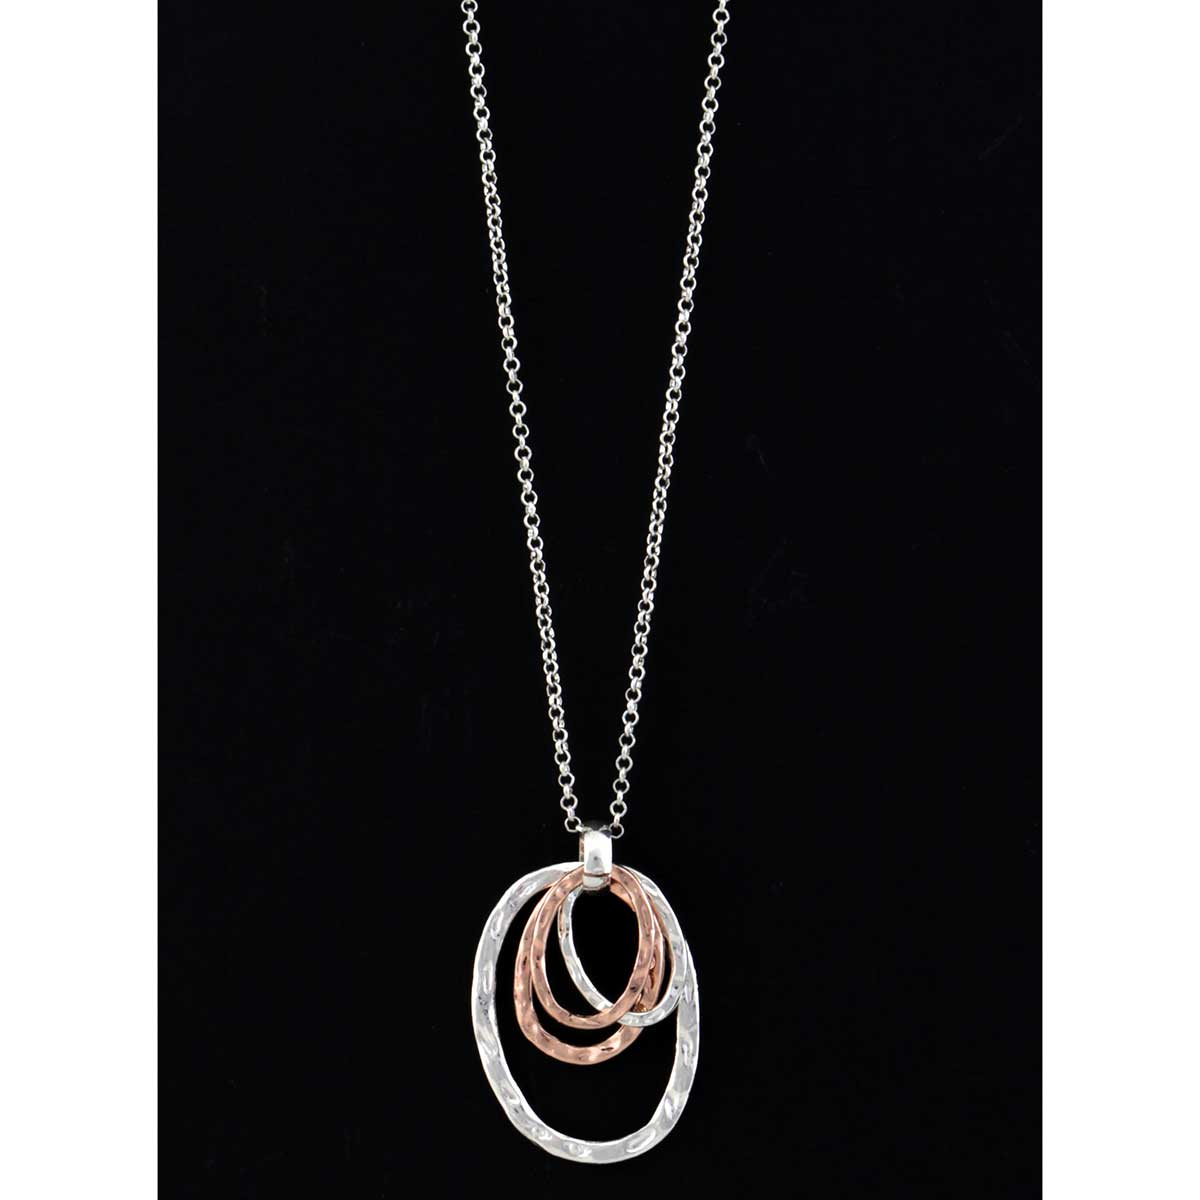 "4 Silver/Rose Gold 1.75""x2.25"" Ovals on Chain Necklace 32""-34.25"